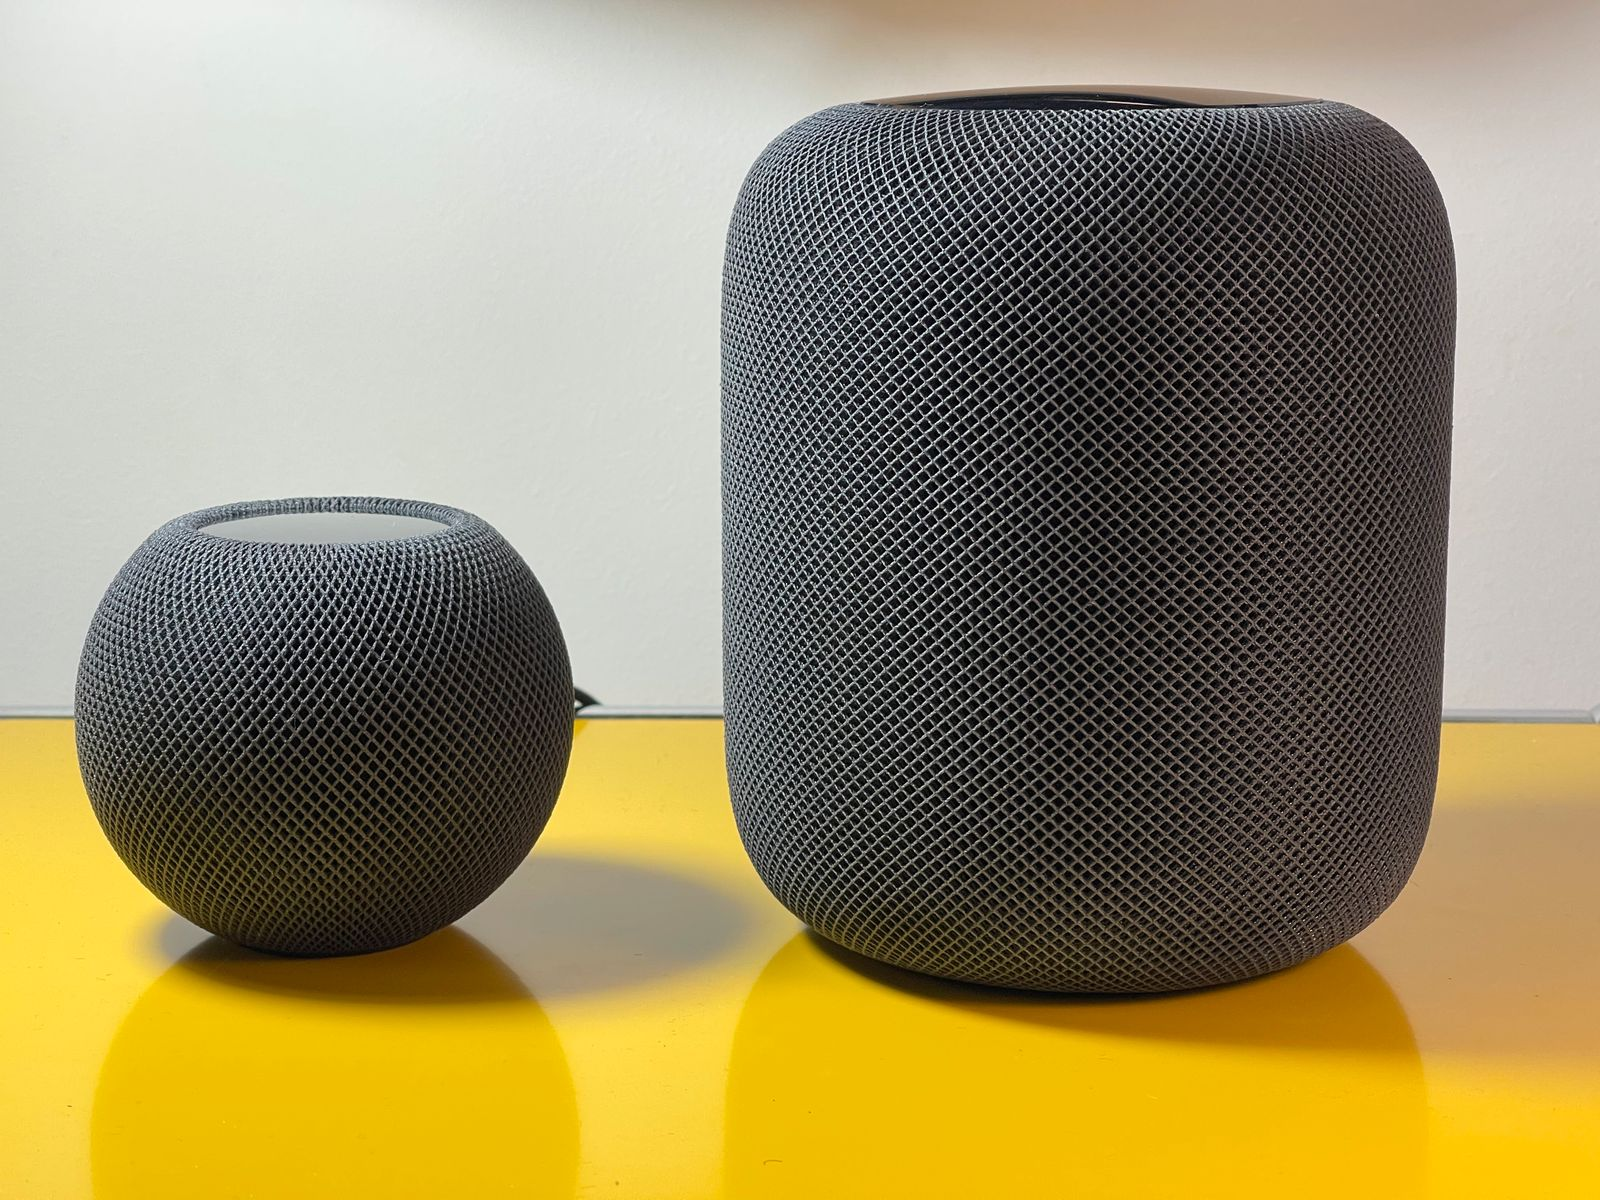 Apple HomePod Mini / Sperrfrist 12.11. 15 Uhr